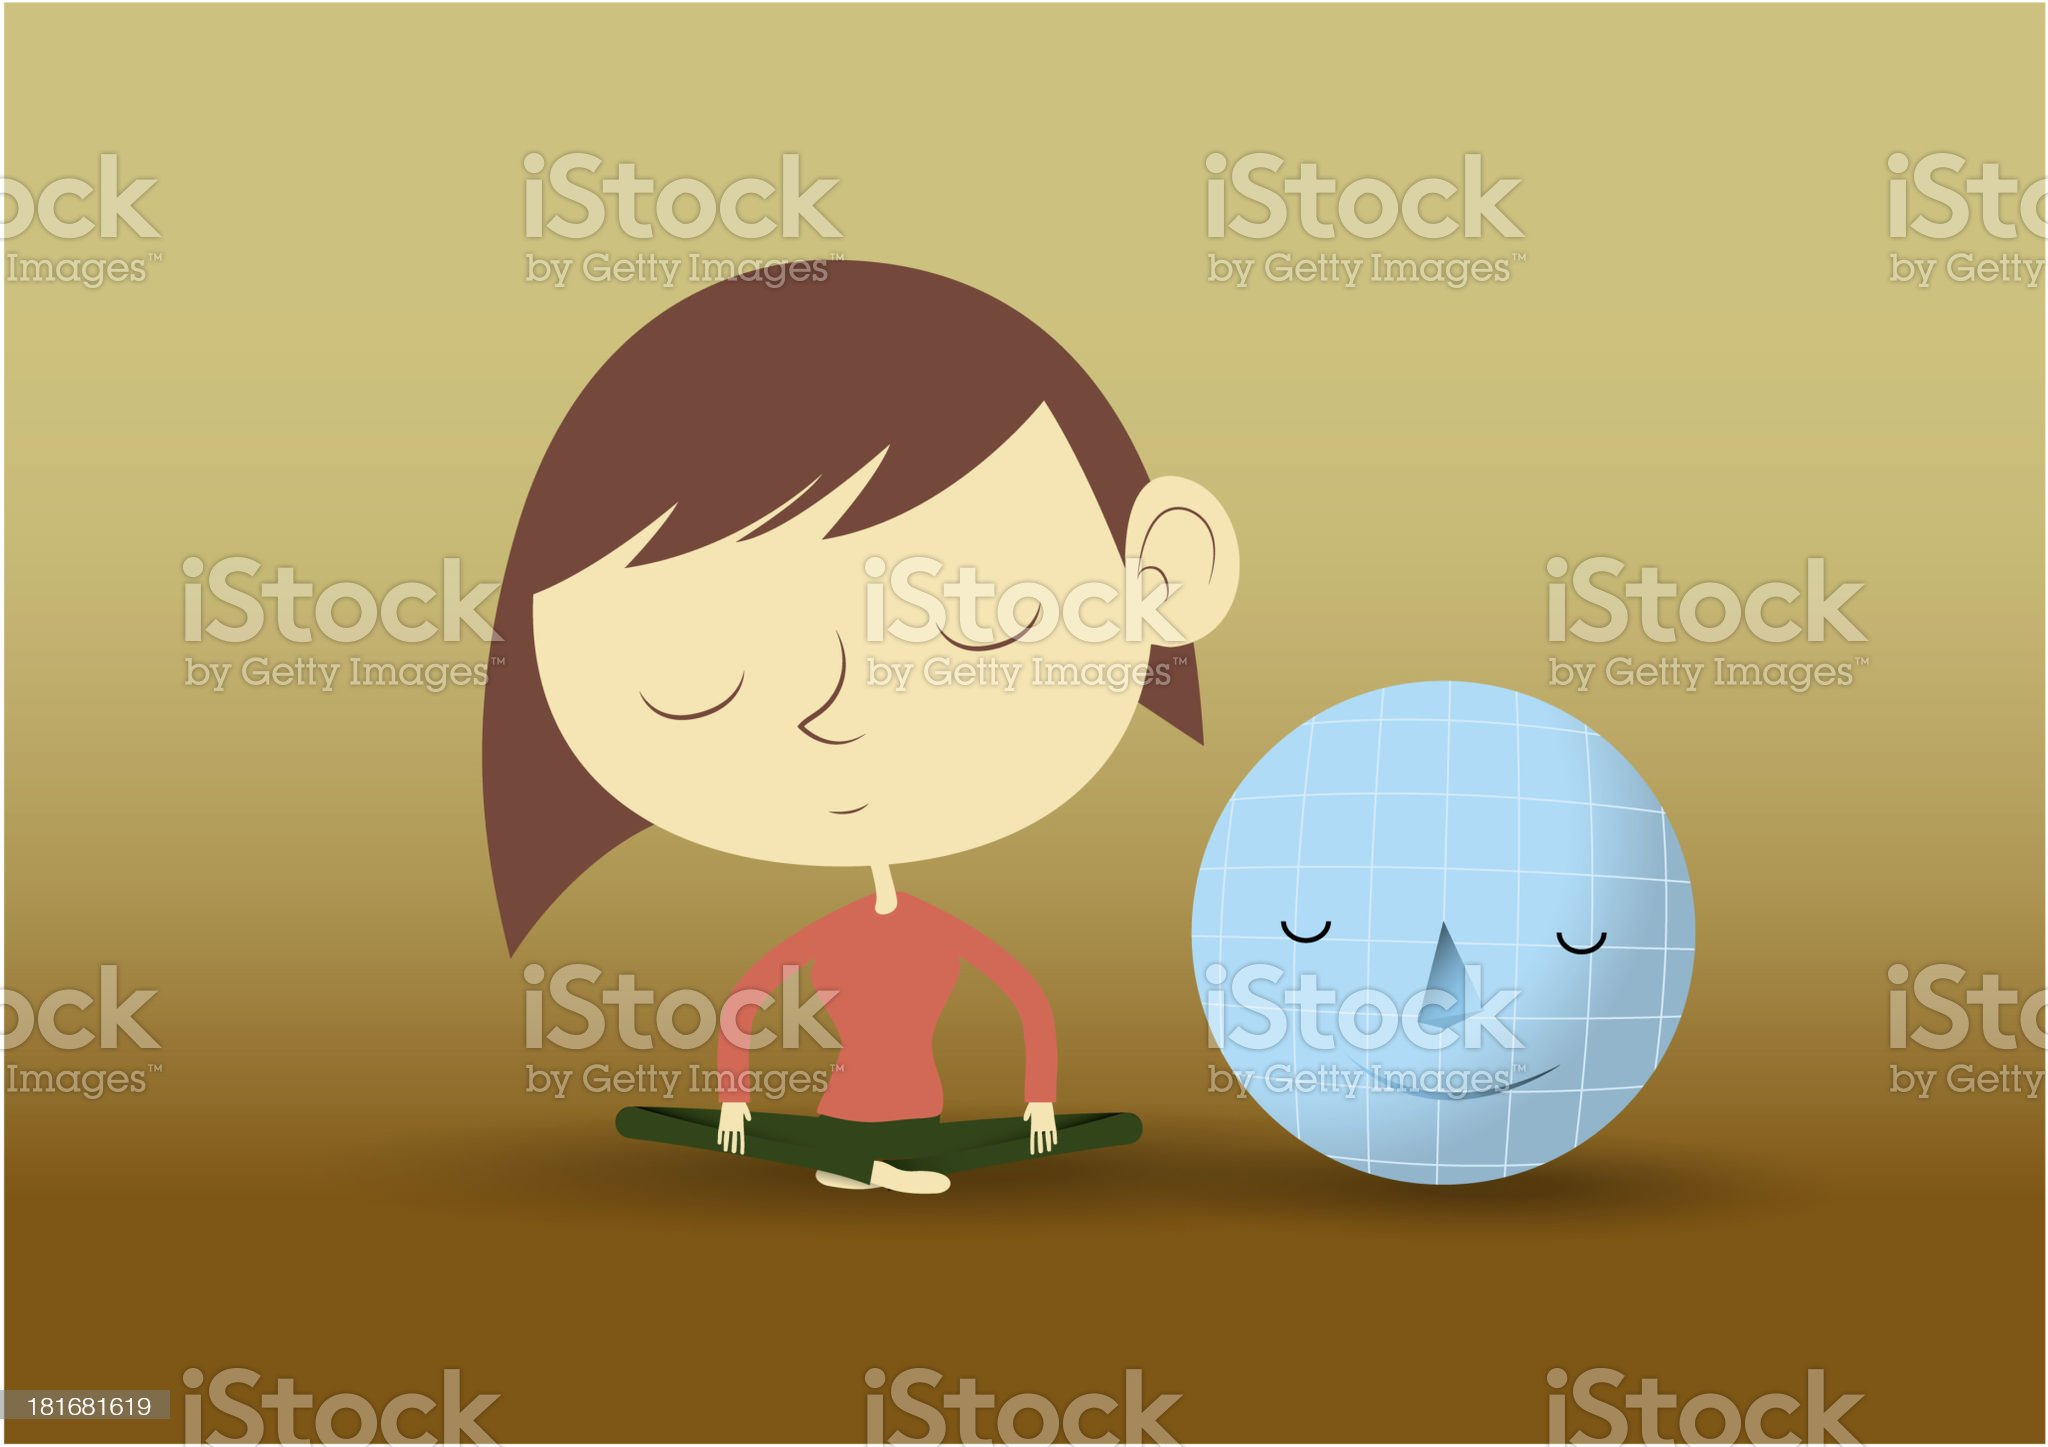 Yong women  in pose practicing yoga with small world royalty-free stock photo